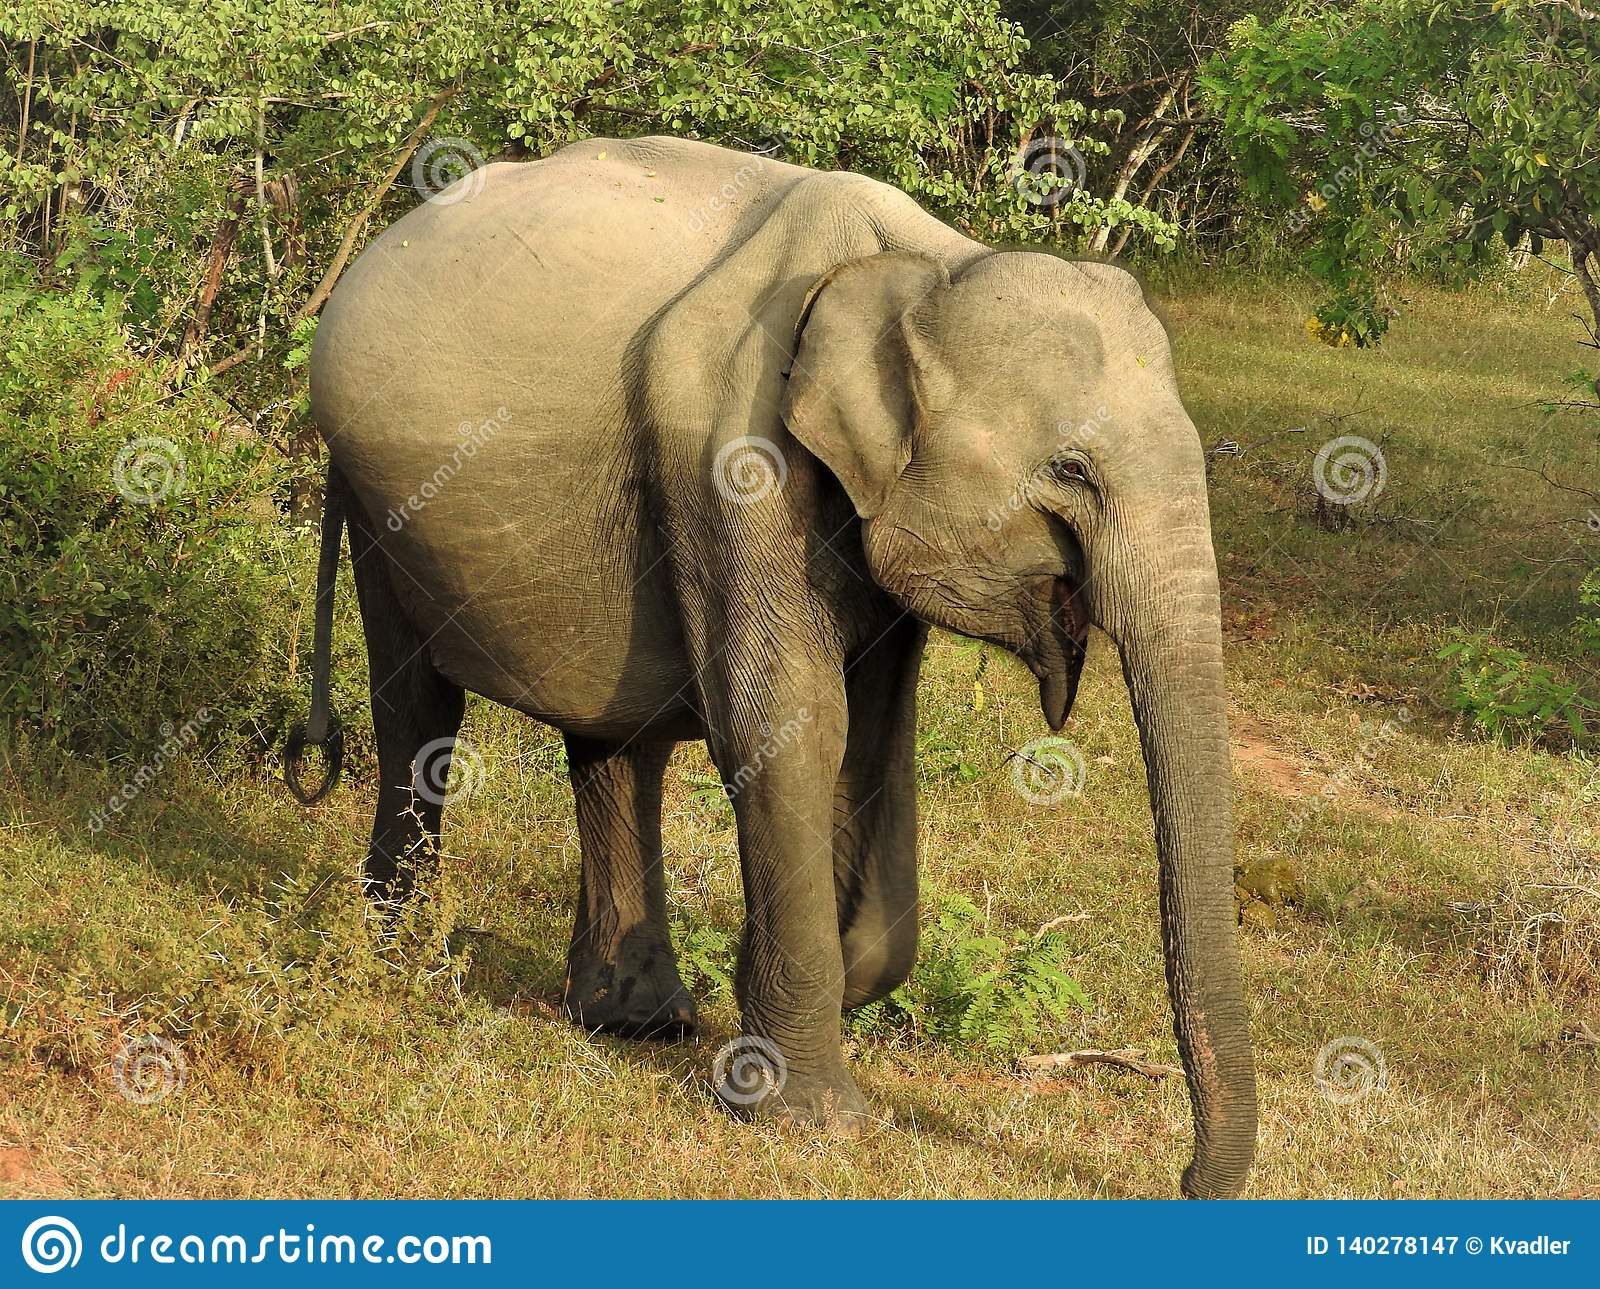 The baby elephant walks in the green jungle on a clear Sunny day in the Yala national Park in Sri Lanka